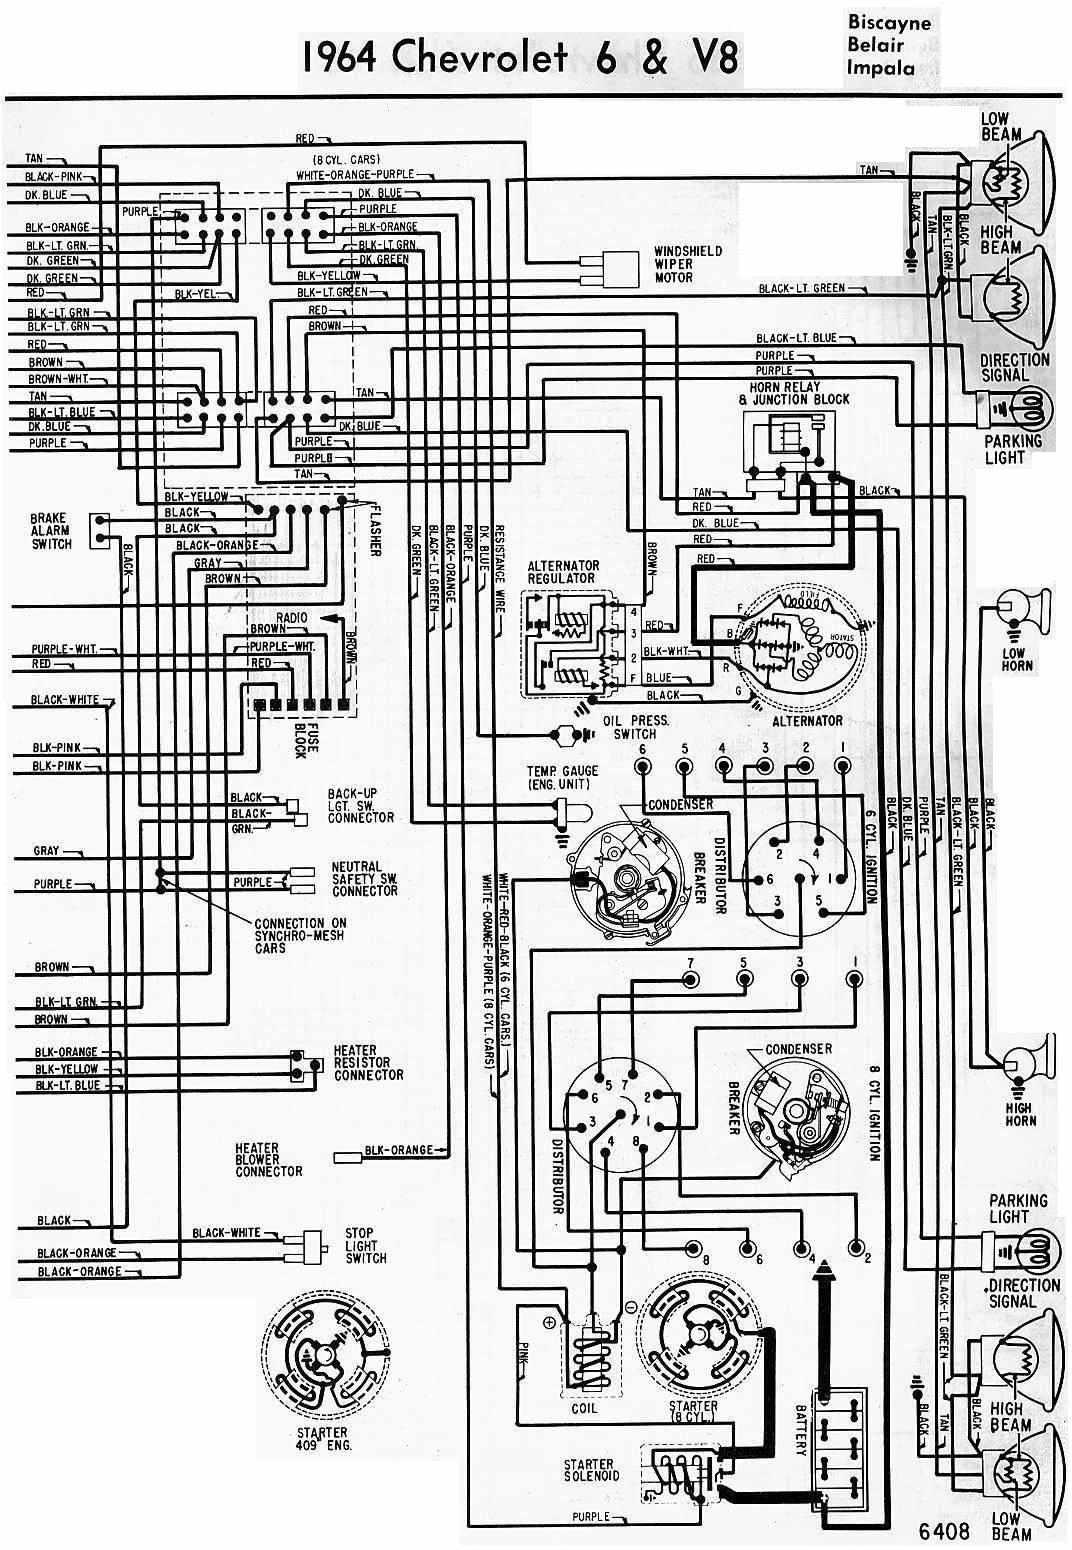 Electrical+Wiring+Diagram+Of+1964+Chevrolet+6+And+V8 1964 bel air wire diagram colors incorrect chevytalk free 1963 impala electrical diagram at soozxer.org